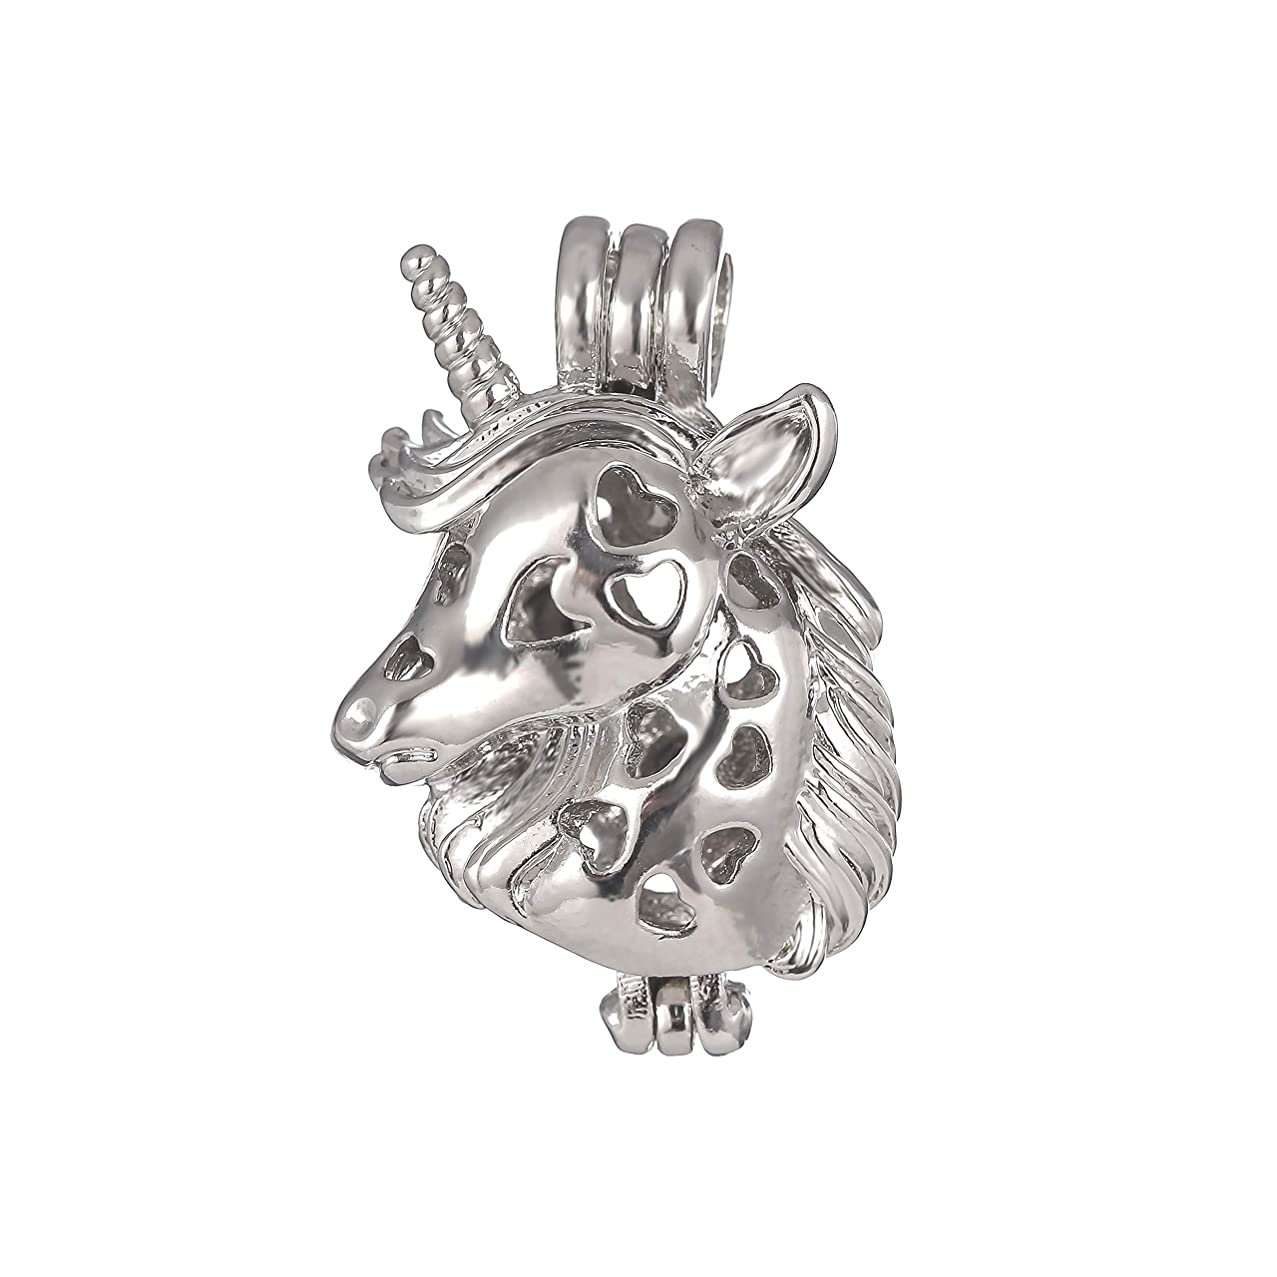 10pcs Unicorn Bright Silver Pearl Cage Beads Cage Locket Pendant Aromatherapy Pendant Jewelry Making-for Oyster Pearls, Essential Oil Diffuser, Fun Gifts (Unicorn)